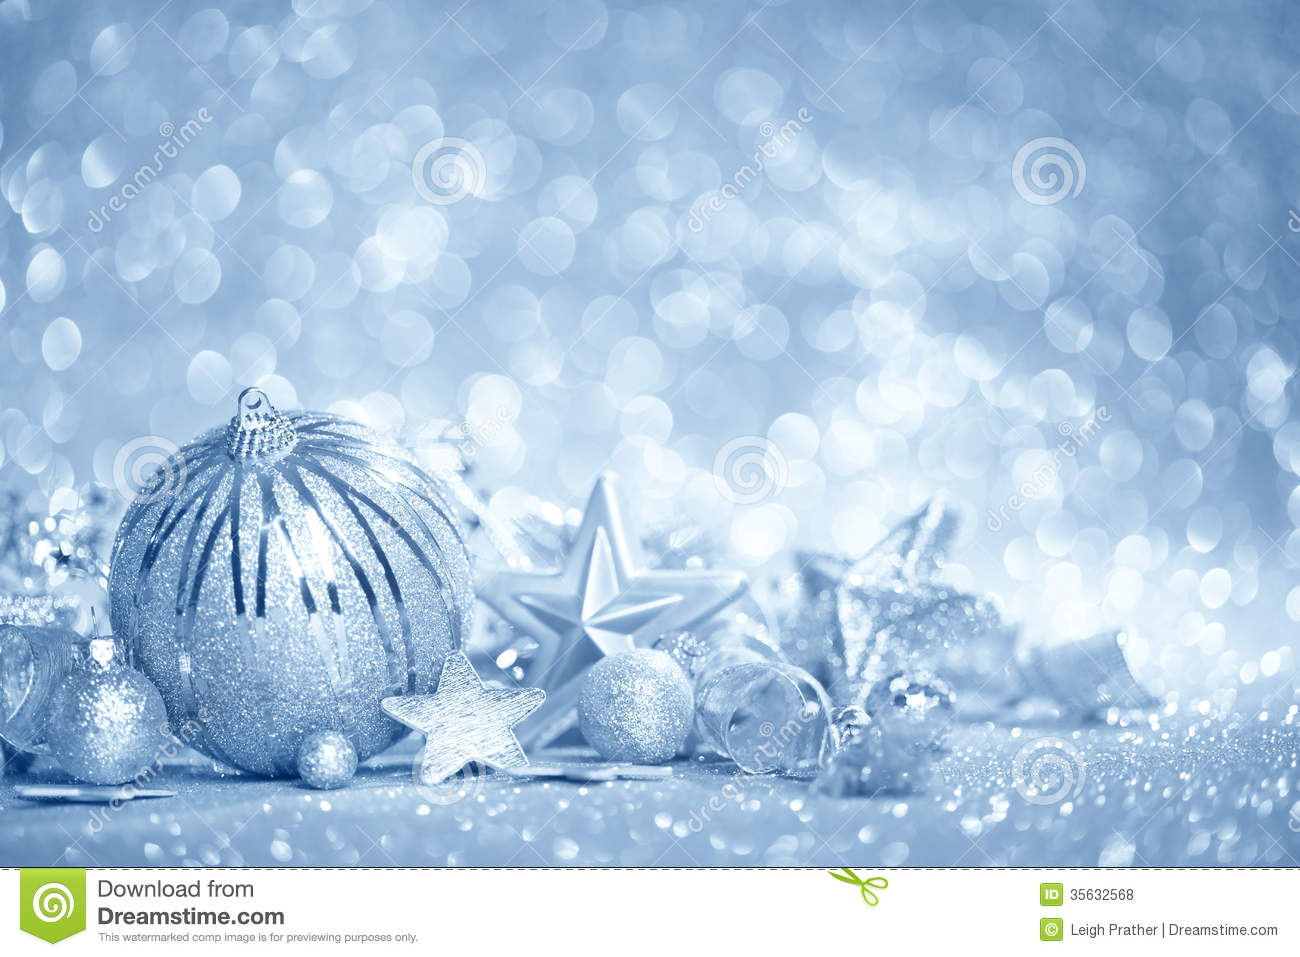 Blue Christmas Background Royalty Free Stock Photos - Image: 35632568